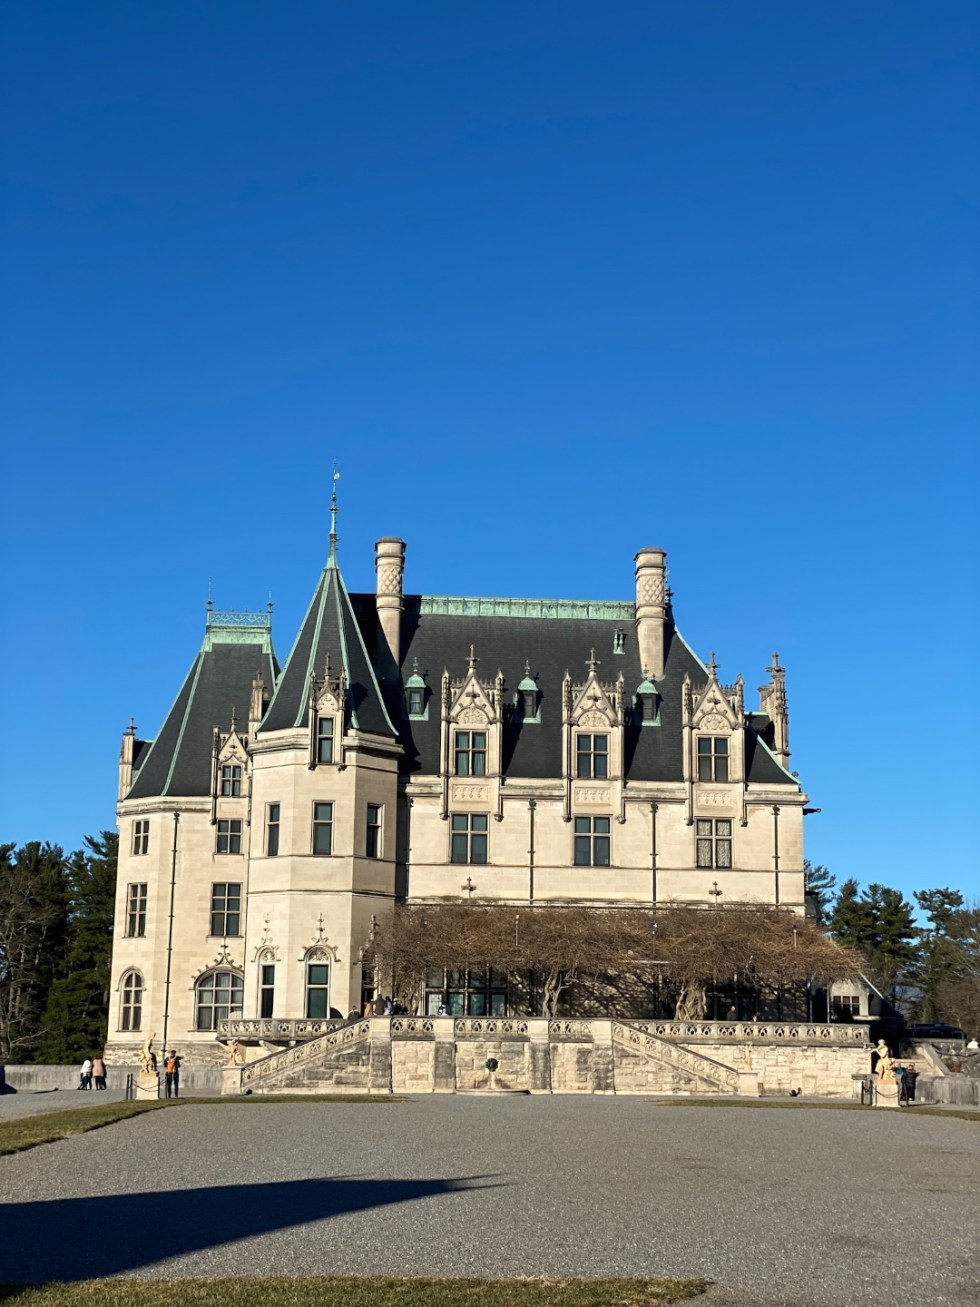 Christmas in Asheville: a Weekend Getaway During the Holidays - I'm Fixin' To - @imfixintoblog |Christmas in Asheville NC by popular NC lifestyle blog, I'm Fixin' To: image of a chateau at The Winery.